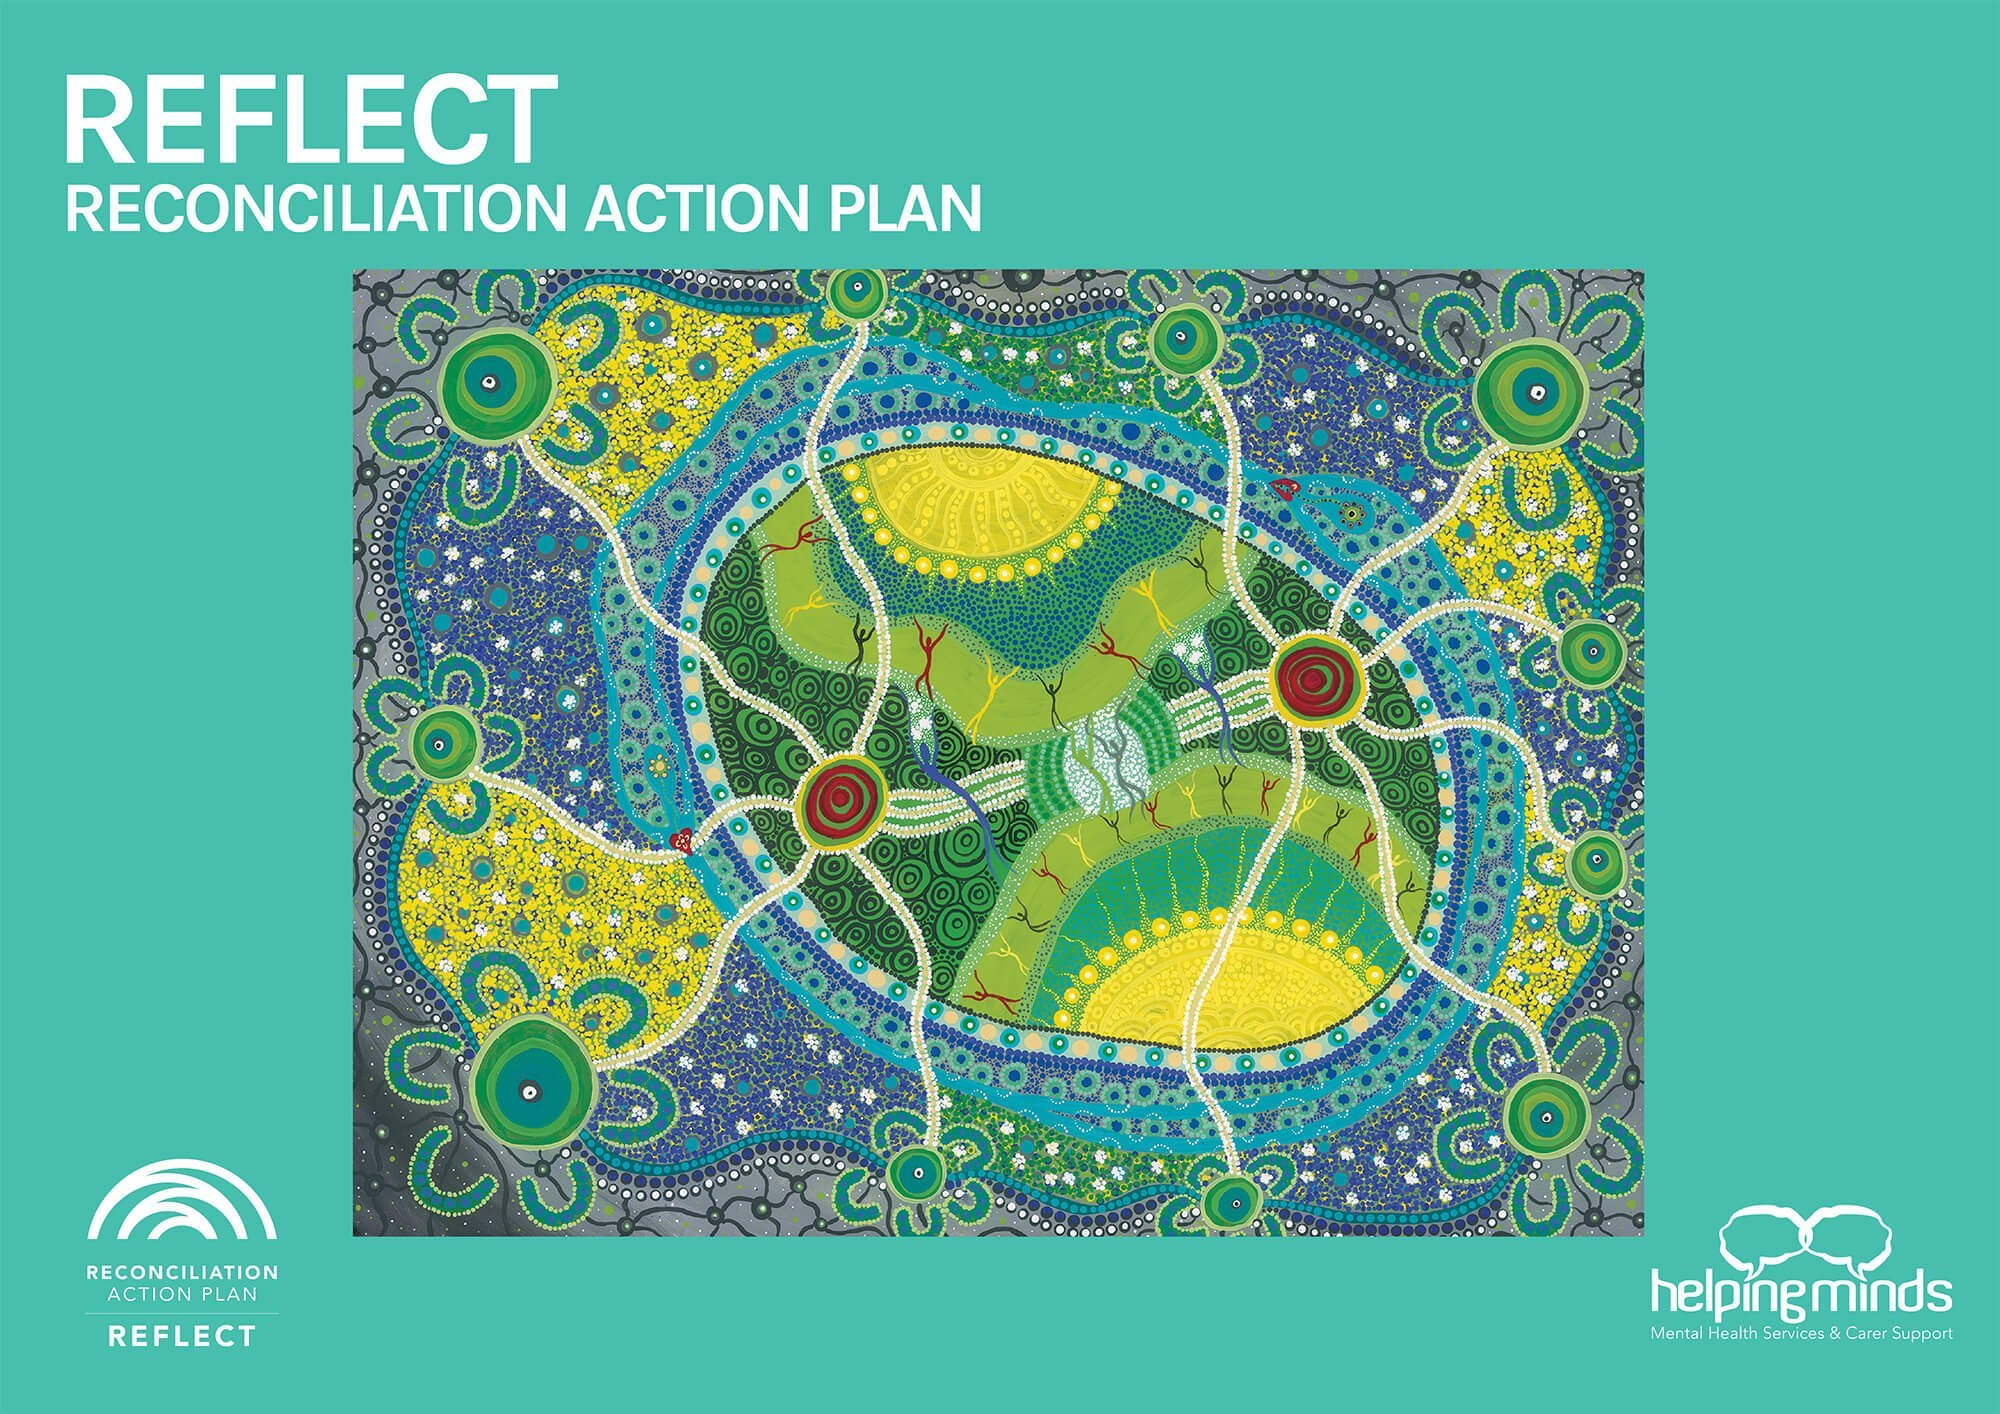 HelpingMinds® Our Reflection, Reconciliation Action Plan official artwork